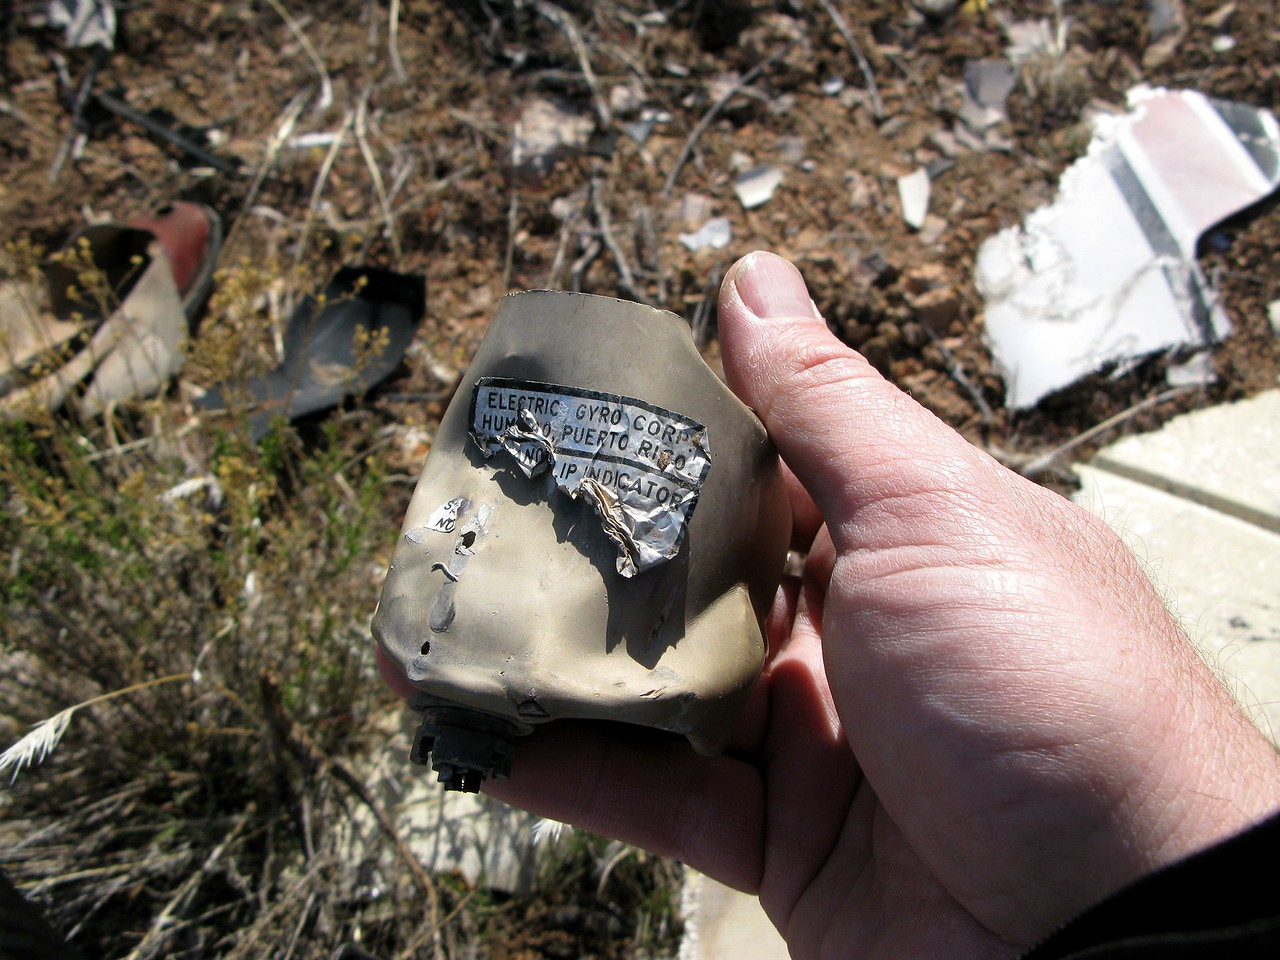 There were very few flight instruments located at the site. This electric Turn and Slip Indicator was barely recognizable and could only be identified by the identification data tag.